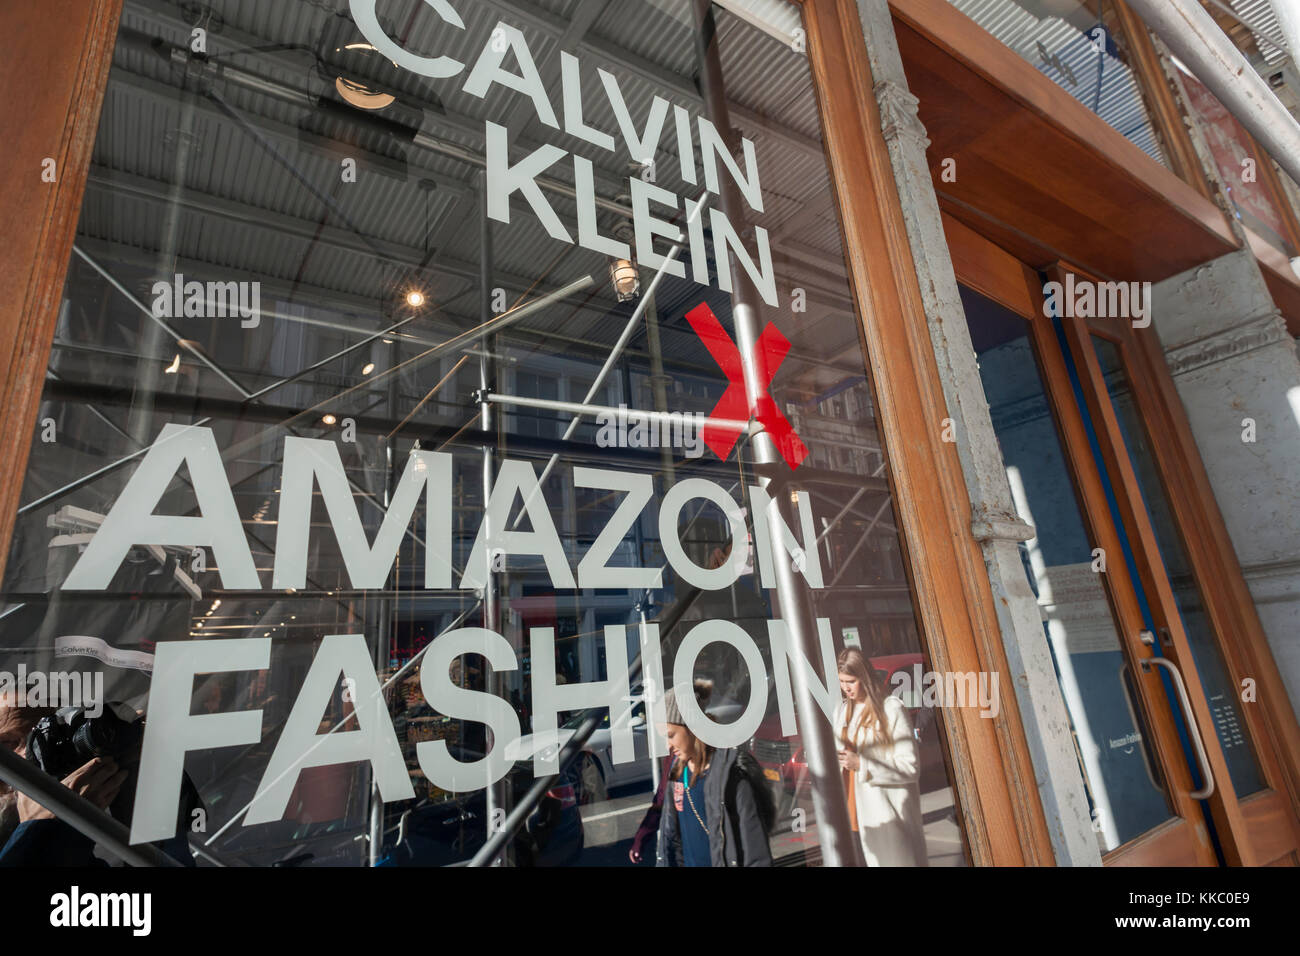 61726b4513913 The Calvin Klein + Amazon Fashion collaboration pop-up store in Soho in New  York on Saturday